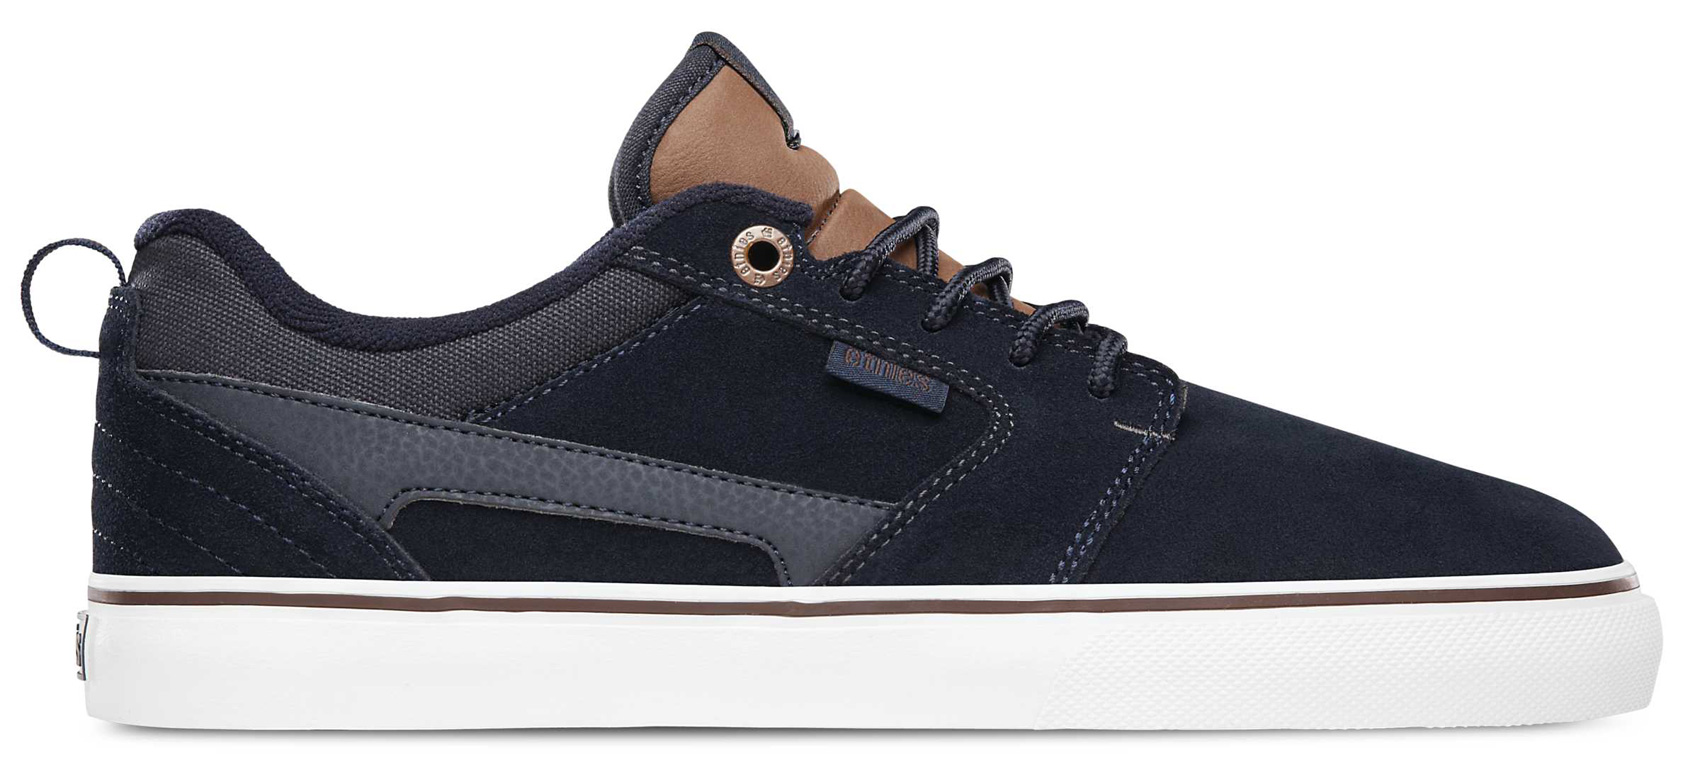 Shoes Skateboarding Rap Navy Brown Skate CT Trainers Etnies U6fwq